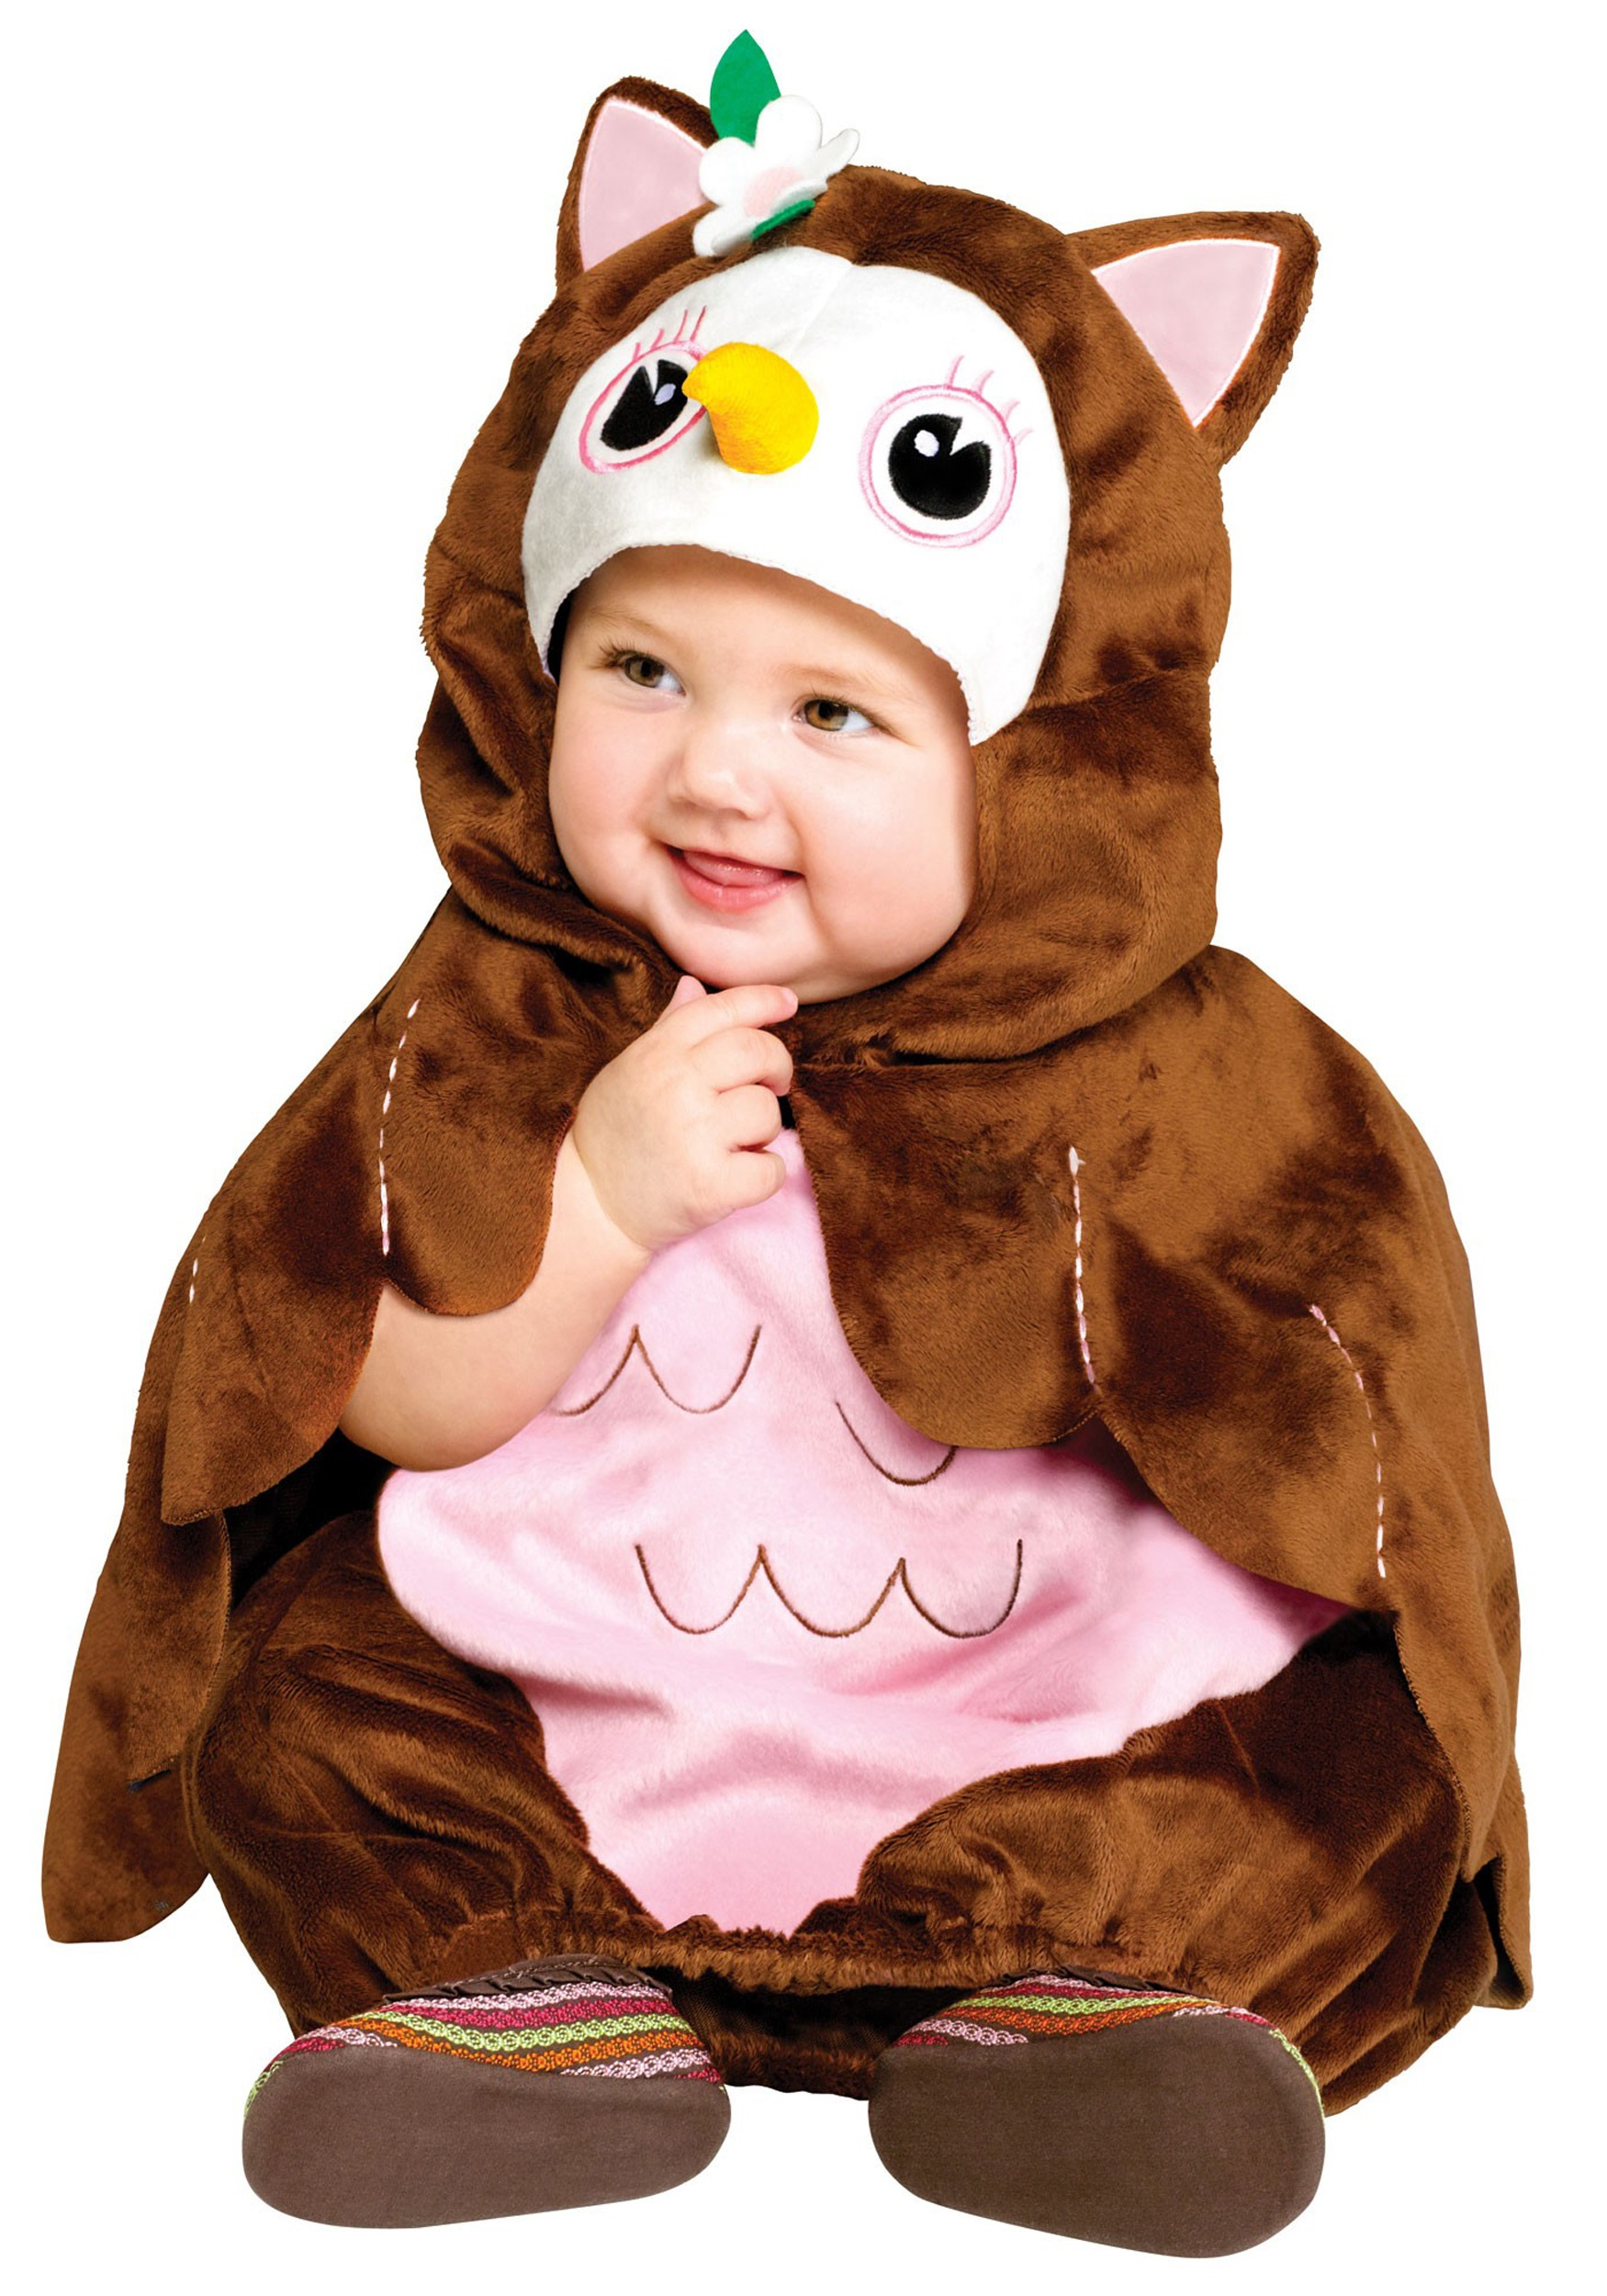 Give A Hoot Toddler Owl Costume  sc 1 st  Halloween Costumes & Give A Hoot Toddler Owl Costume - Halloween Costumes